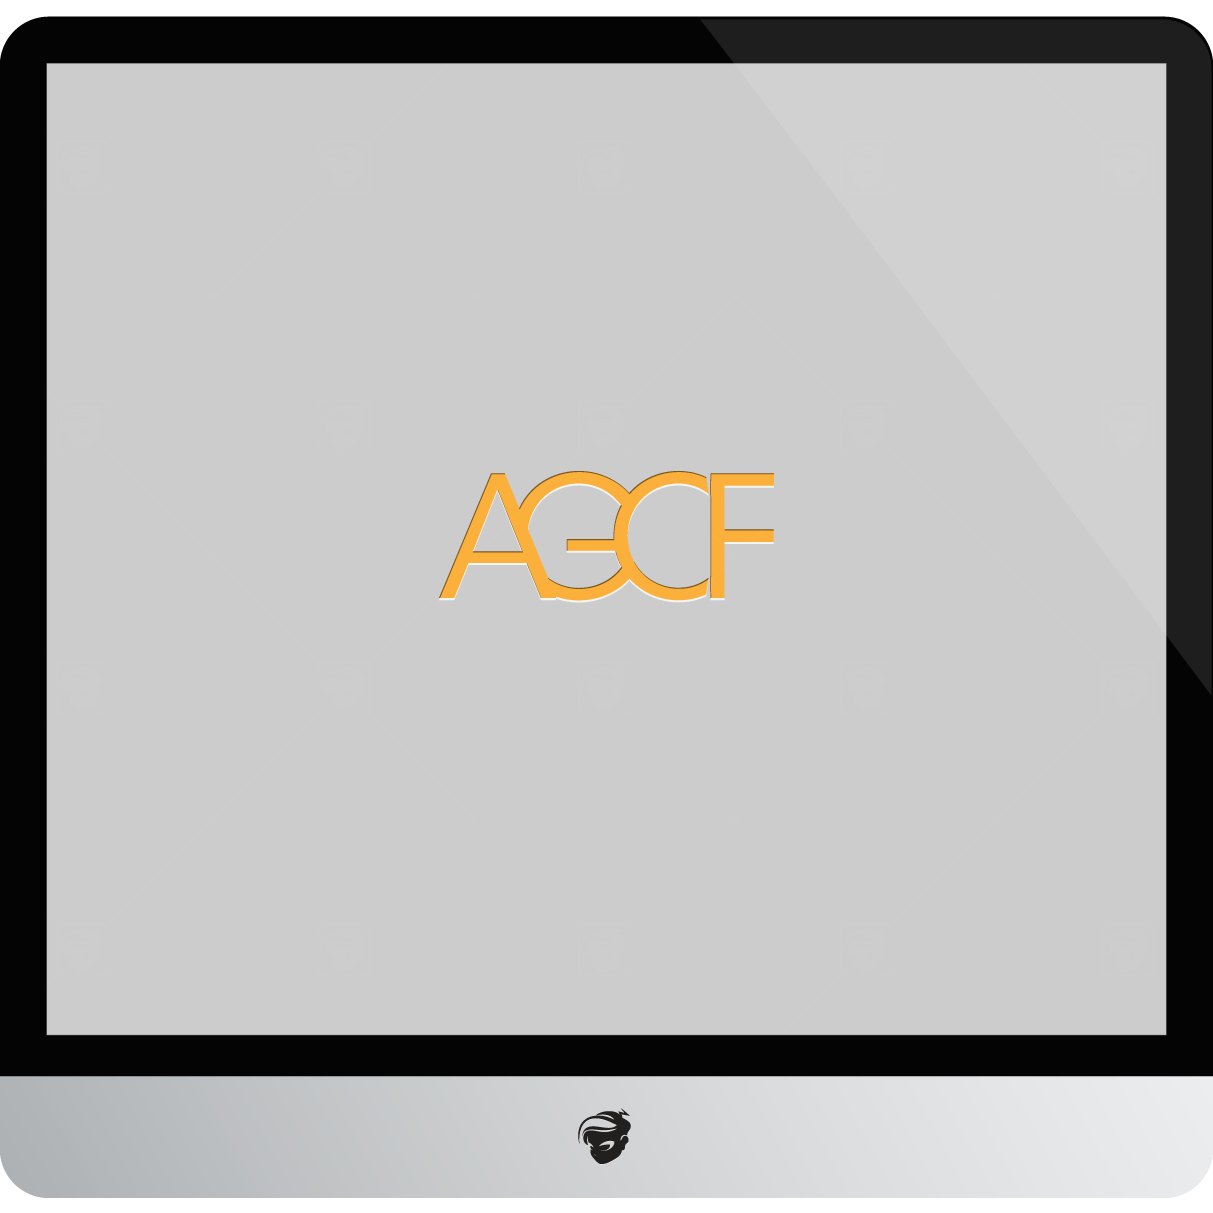 Logo Design by zesthar - Entry No. 78 in the Logo Design Contest Imaginative Logo Design for AGCF.